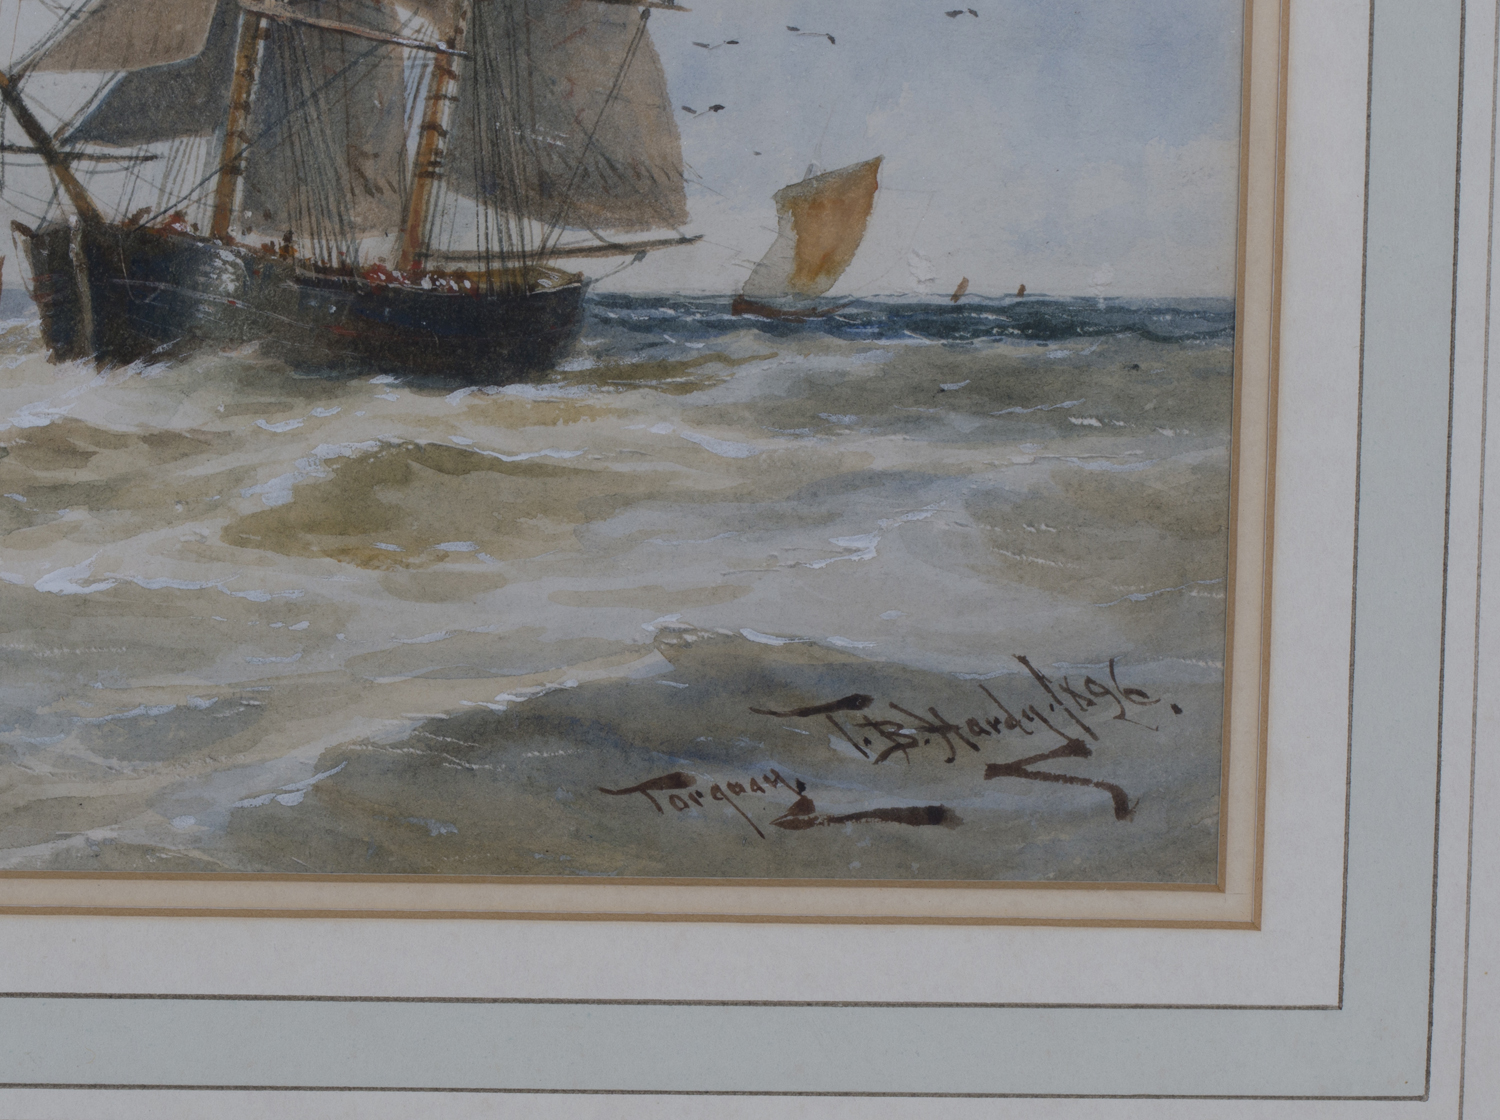 Lot 24 - Thomas Bush Hardy - 'Torquay', watercolour, signed, titled and dated 1896, 23cm x 48.5cm, within a